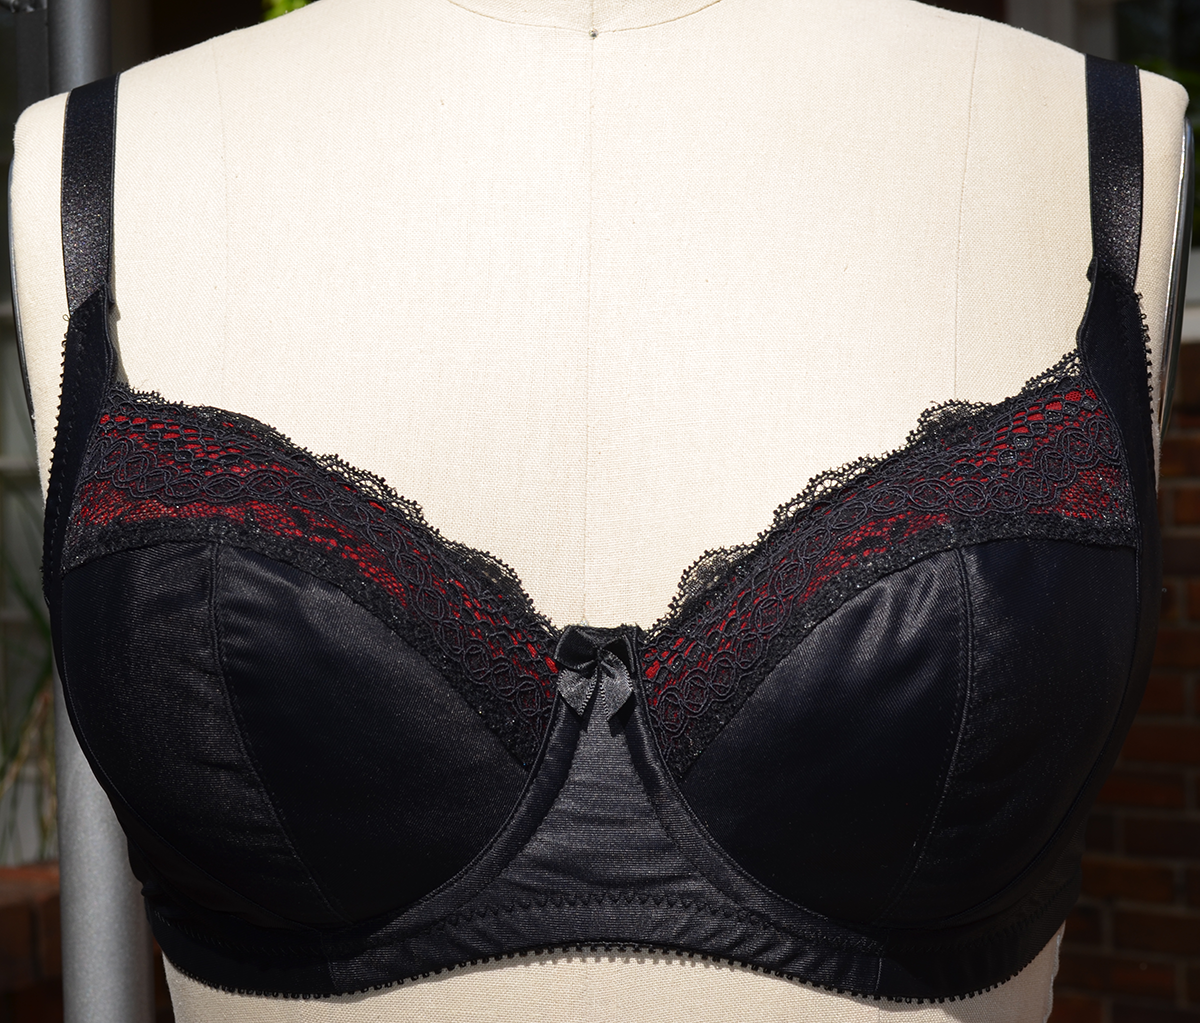 black full cup bra with a hint of red